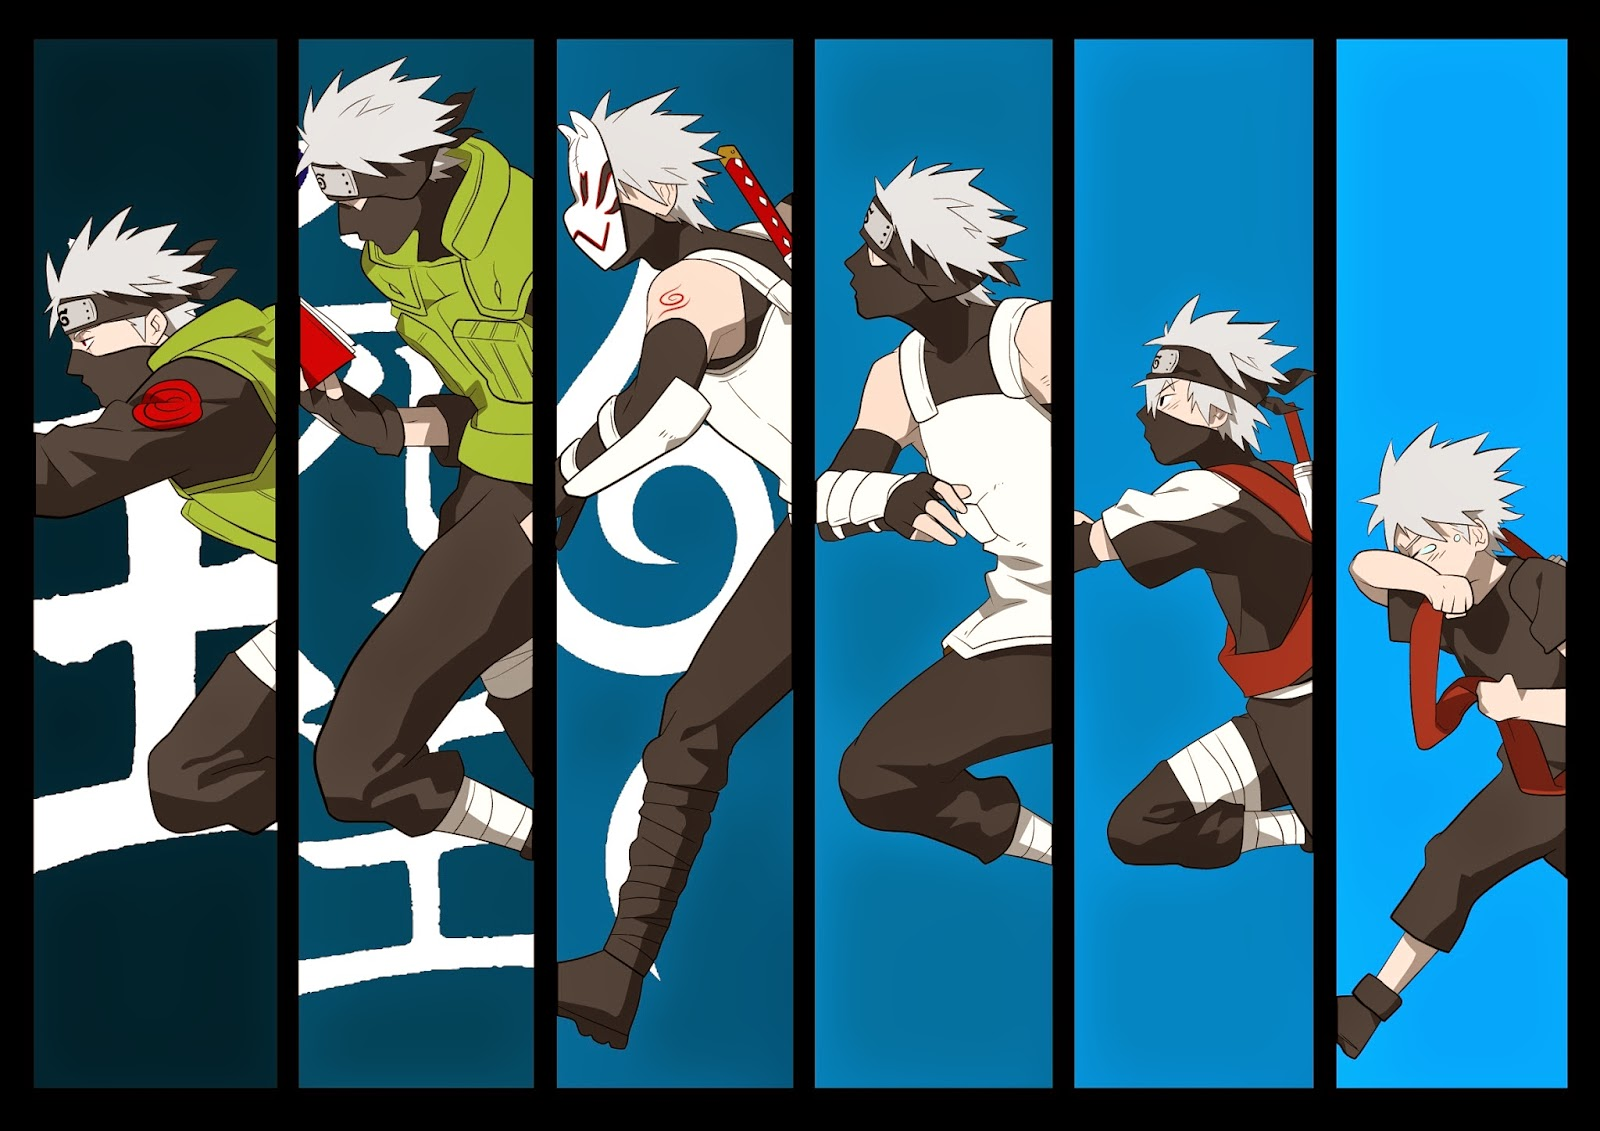 Story of Kakashi